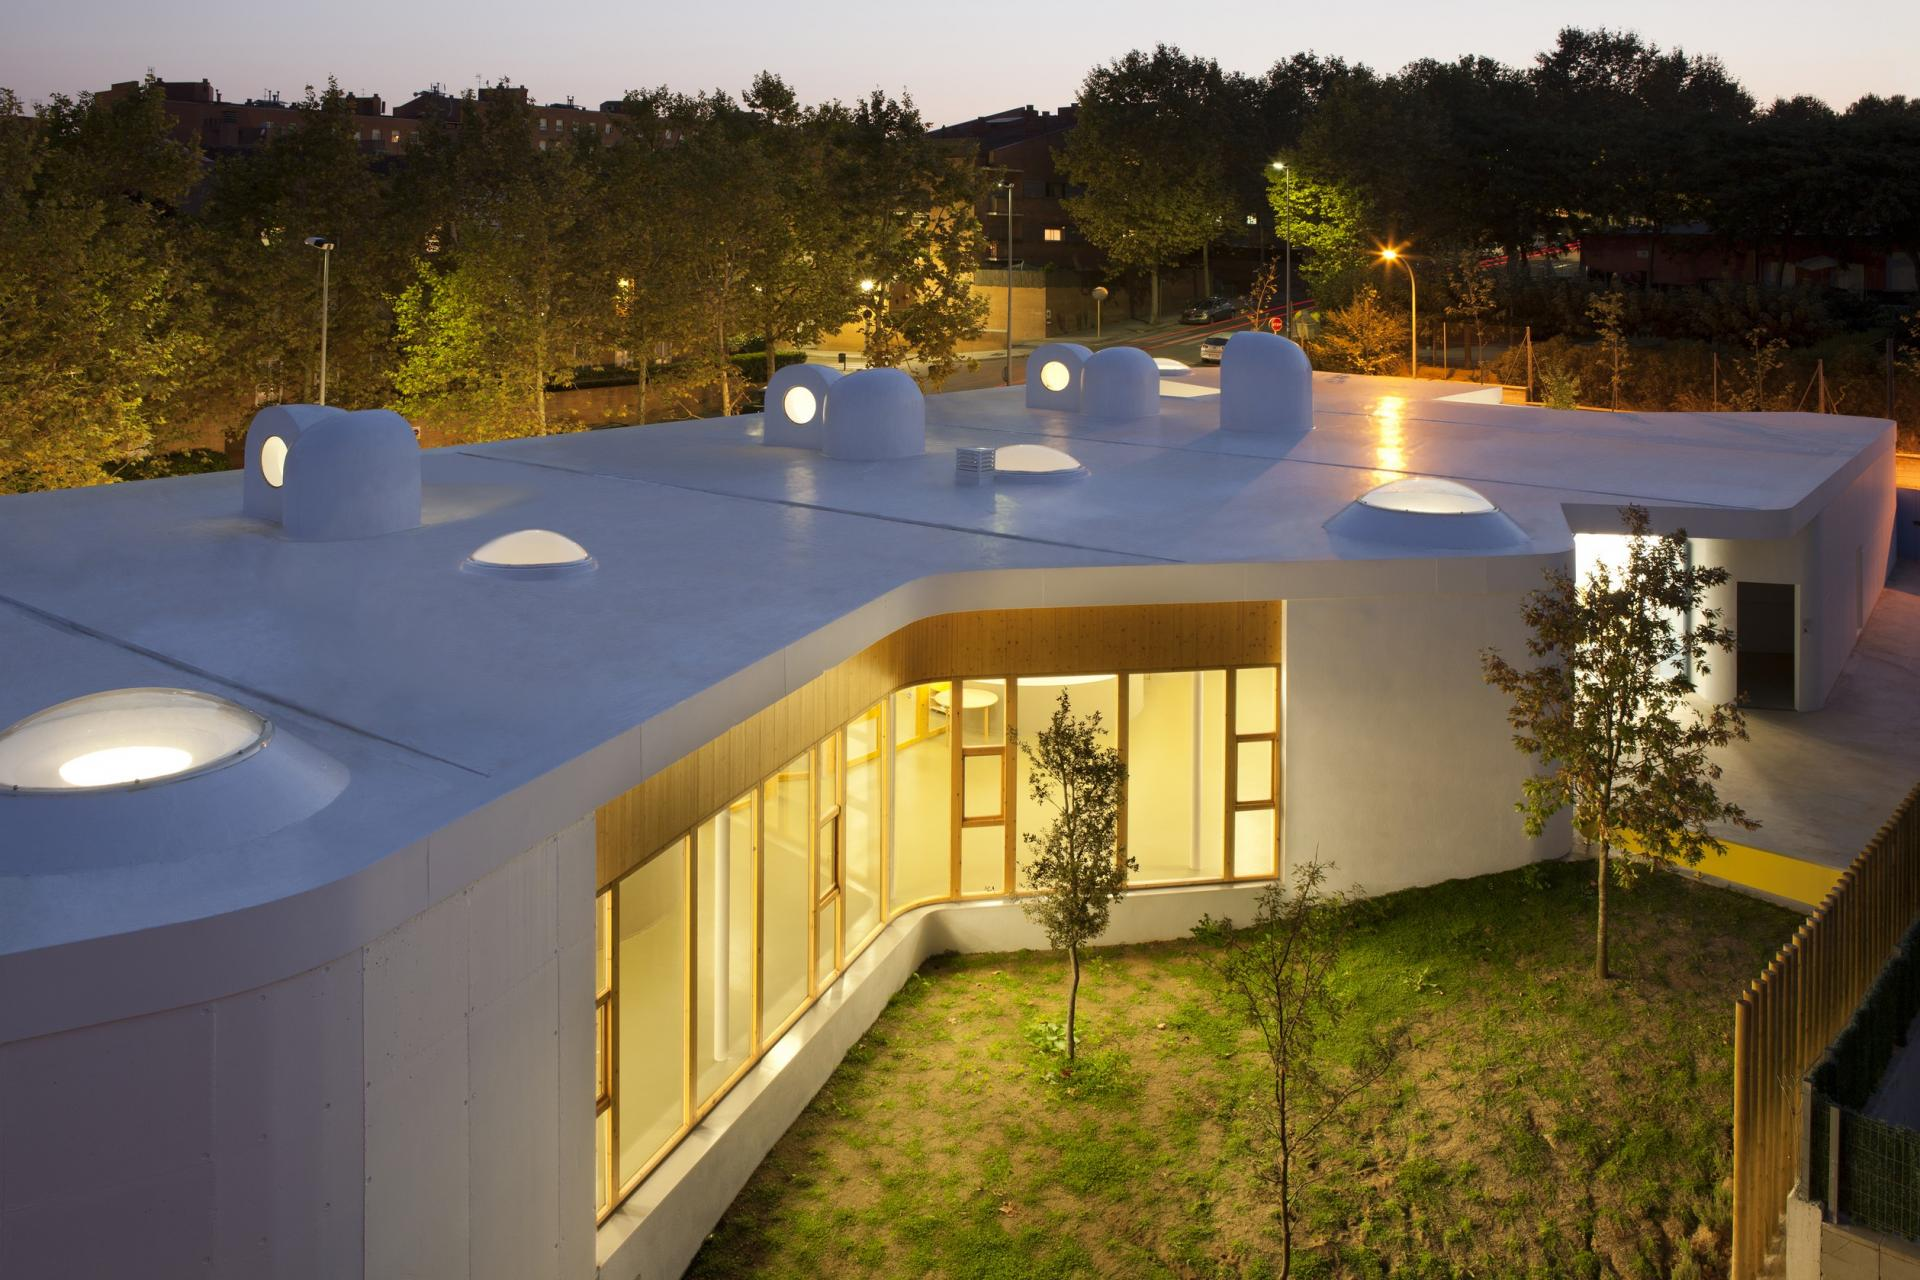 Cerdanyola del Valles Spain  city images : Kindergarden Cerdanyola del Valles AV62 Arquitectos Spain ...